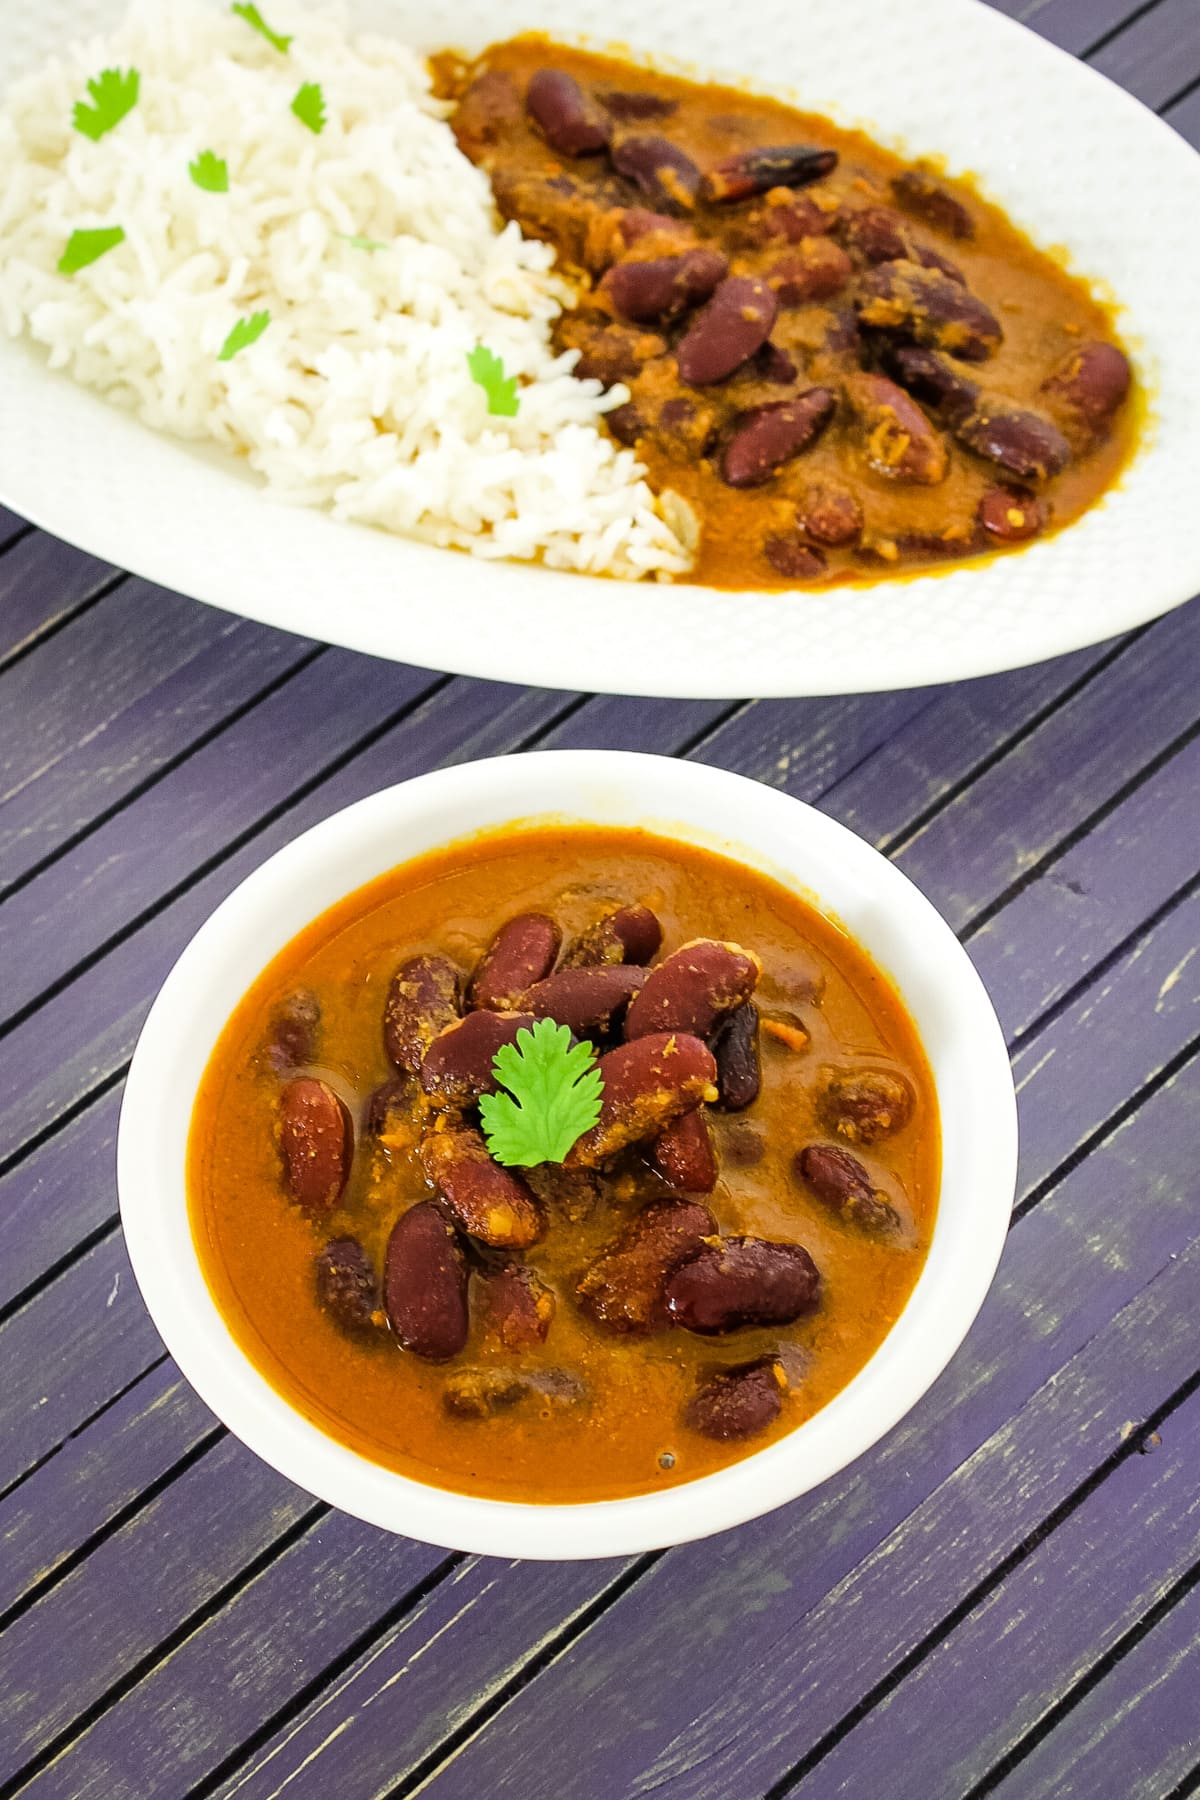 Rajma curry in a bowl and rajma chawal in a plate in back.